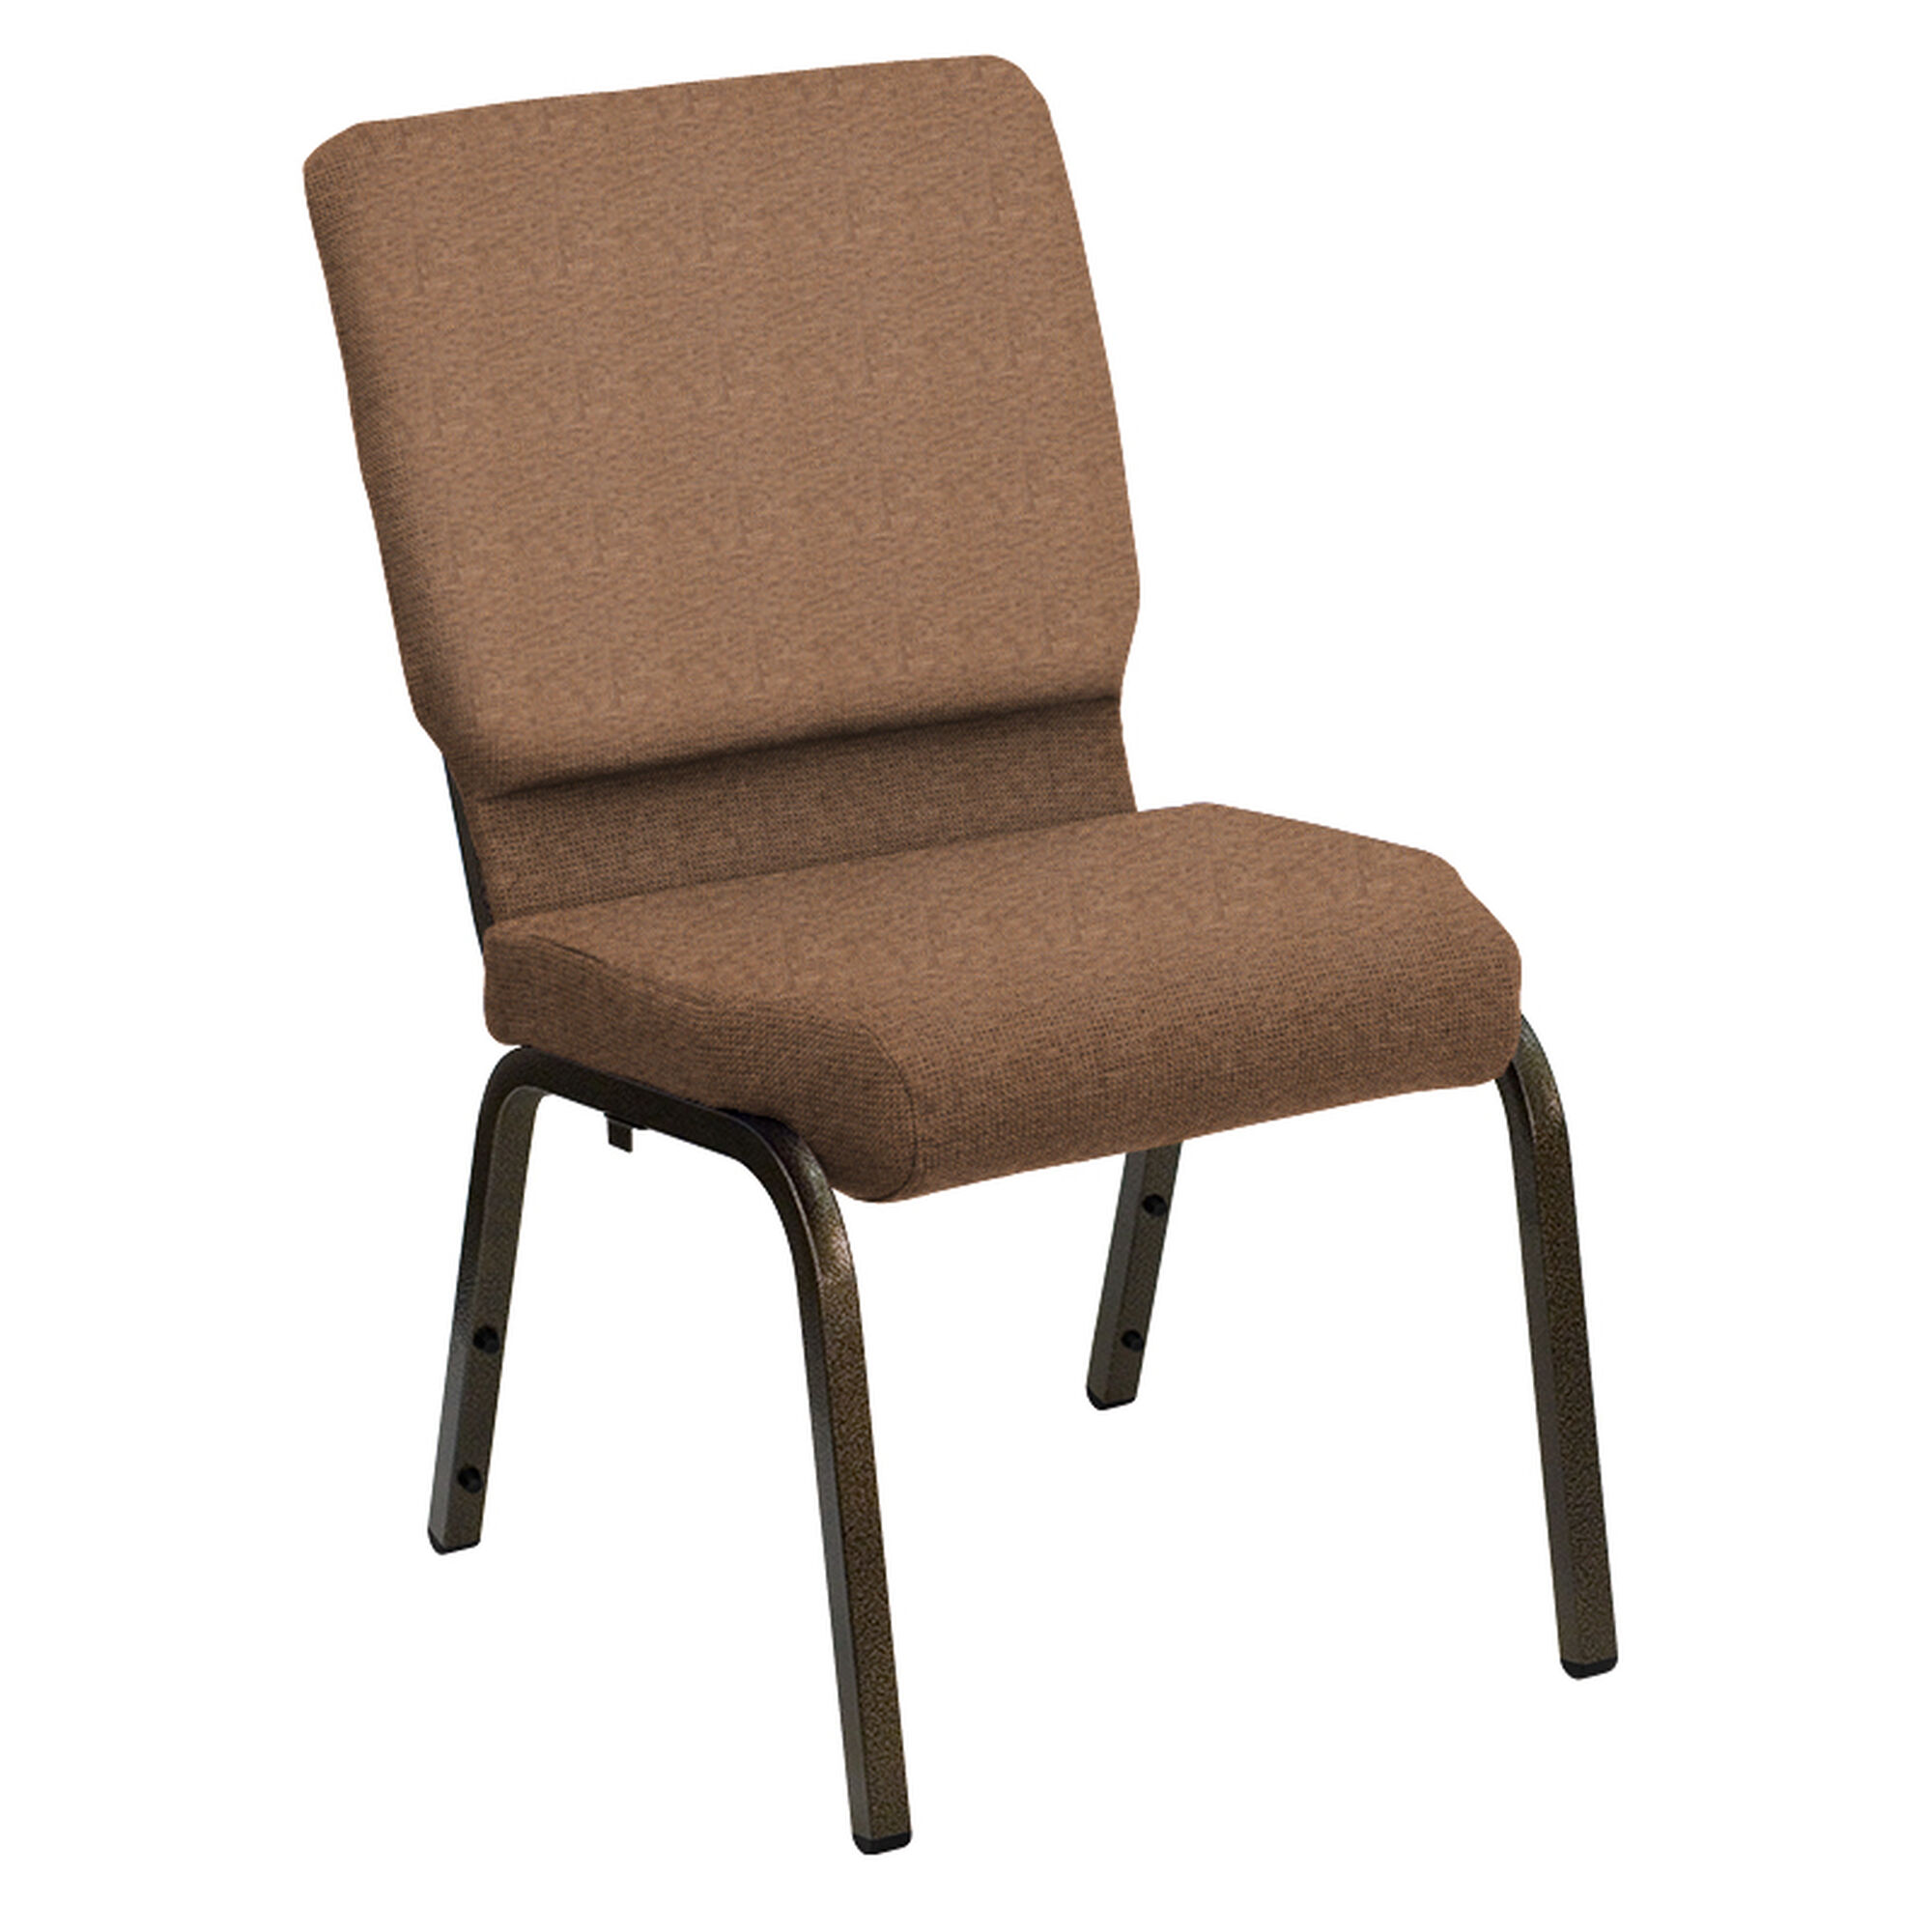 Chairs 4 less / October 2018 Wholesale